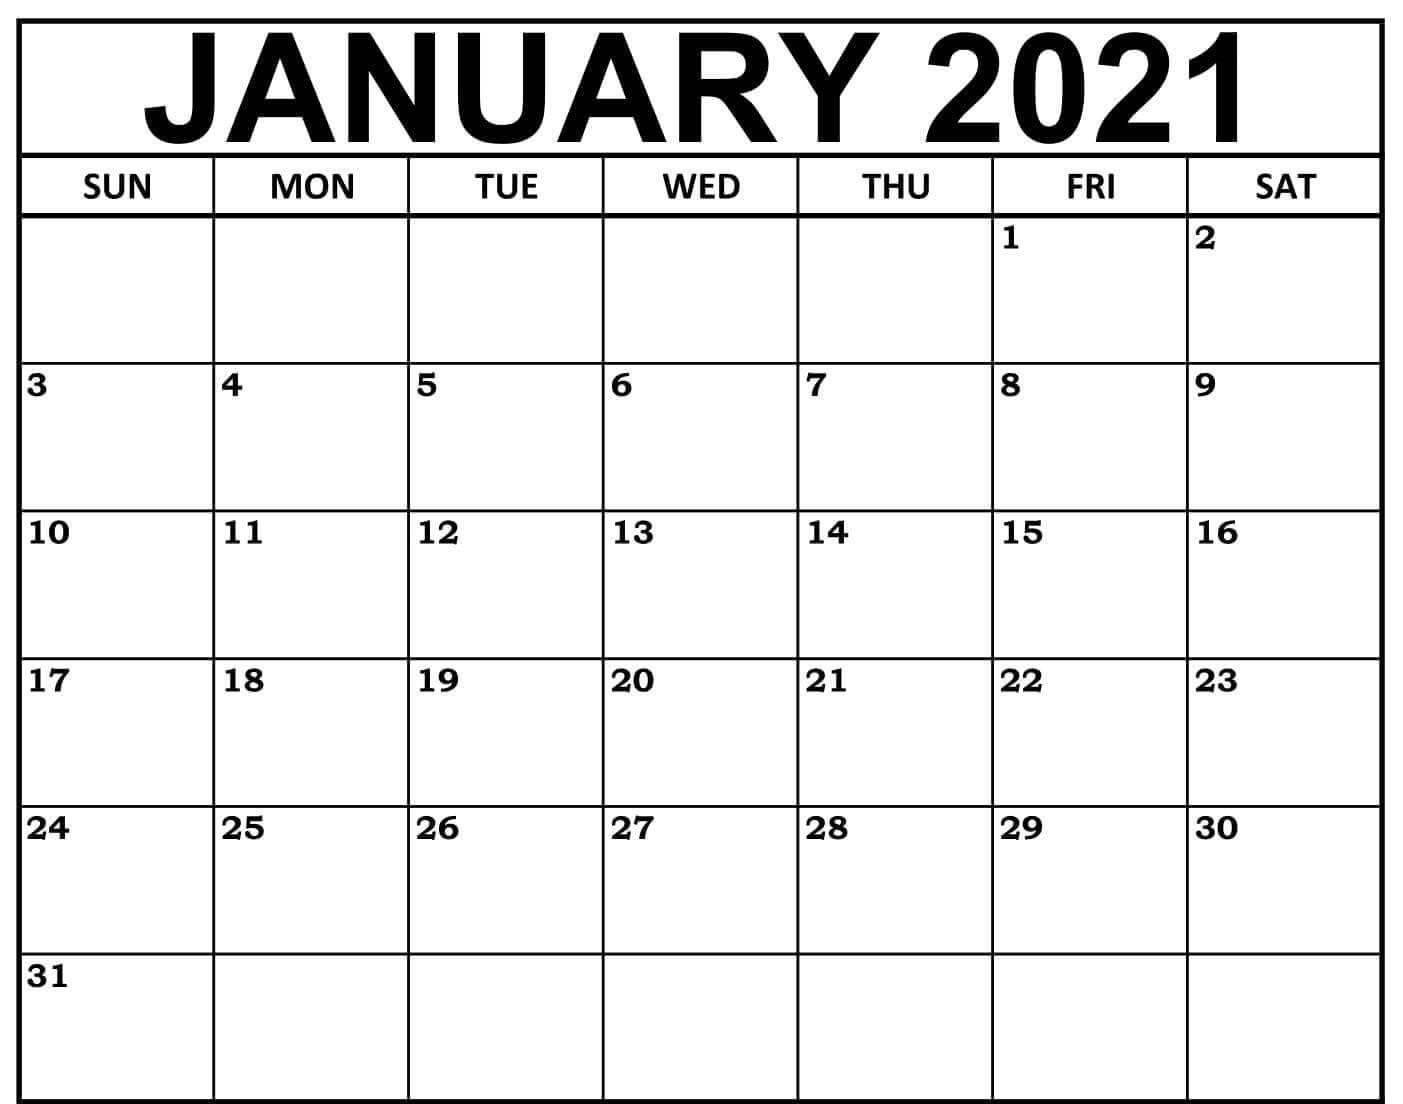 Printable 2021 January Calendar Editable Template.